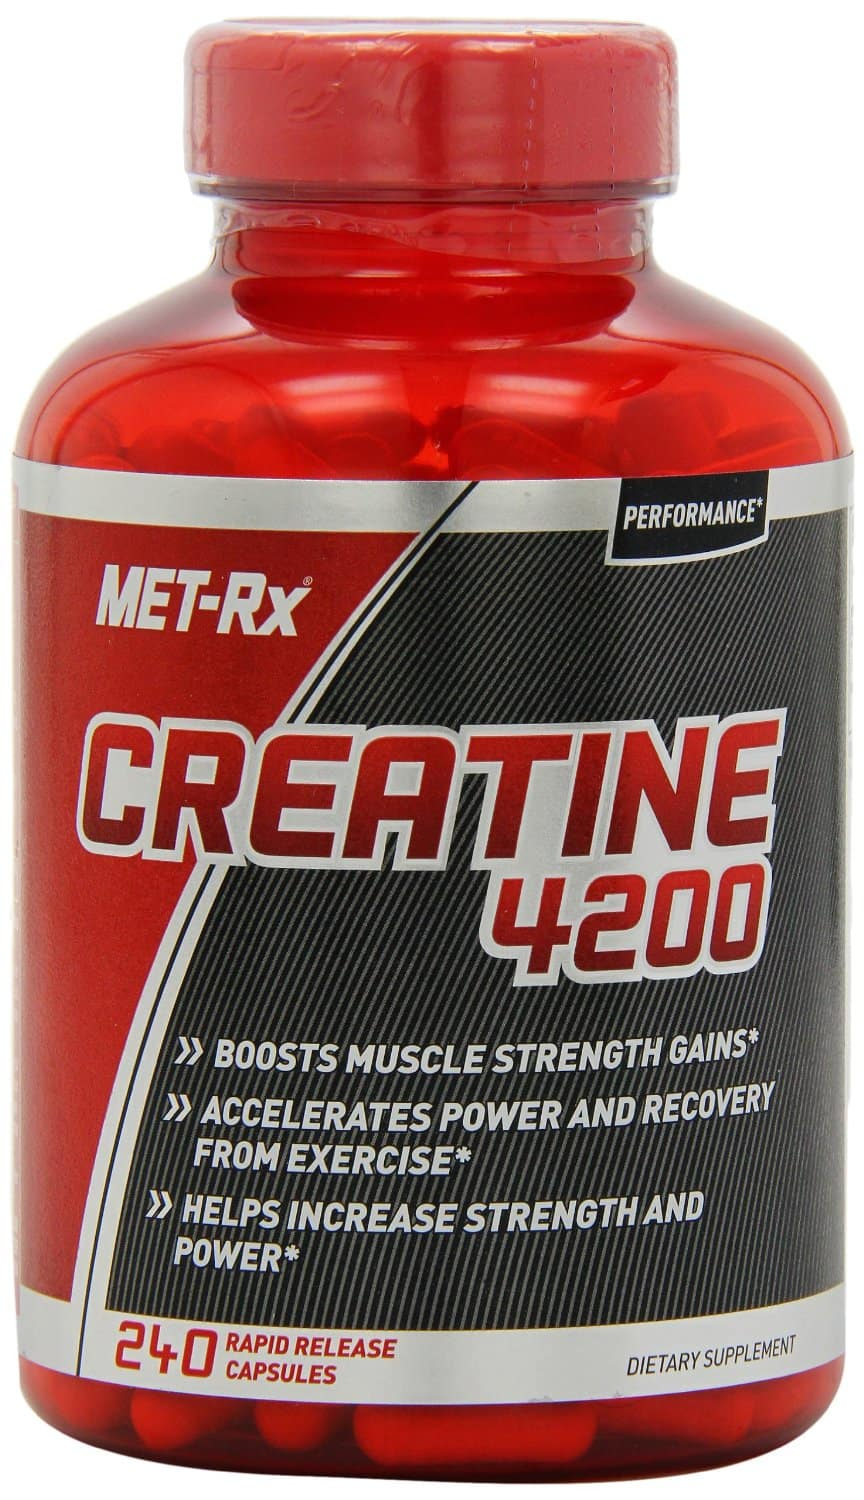 MET-Rx Creatine 4200, 240 count $4.15 FSSS after $1 coupon